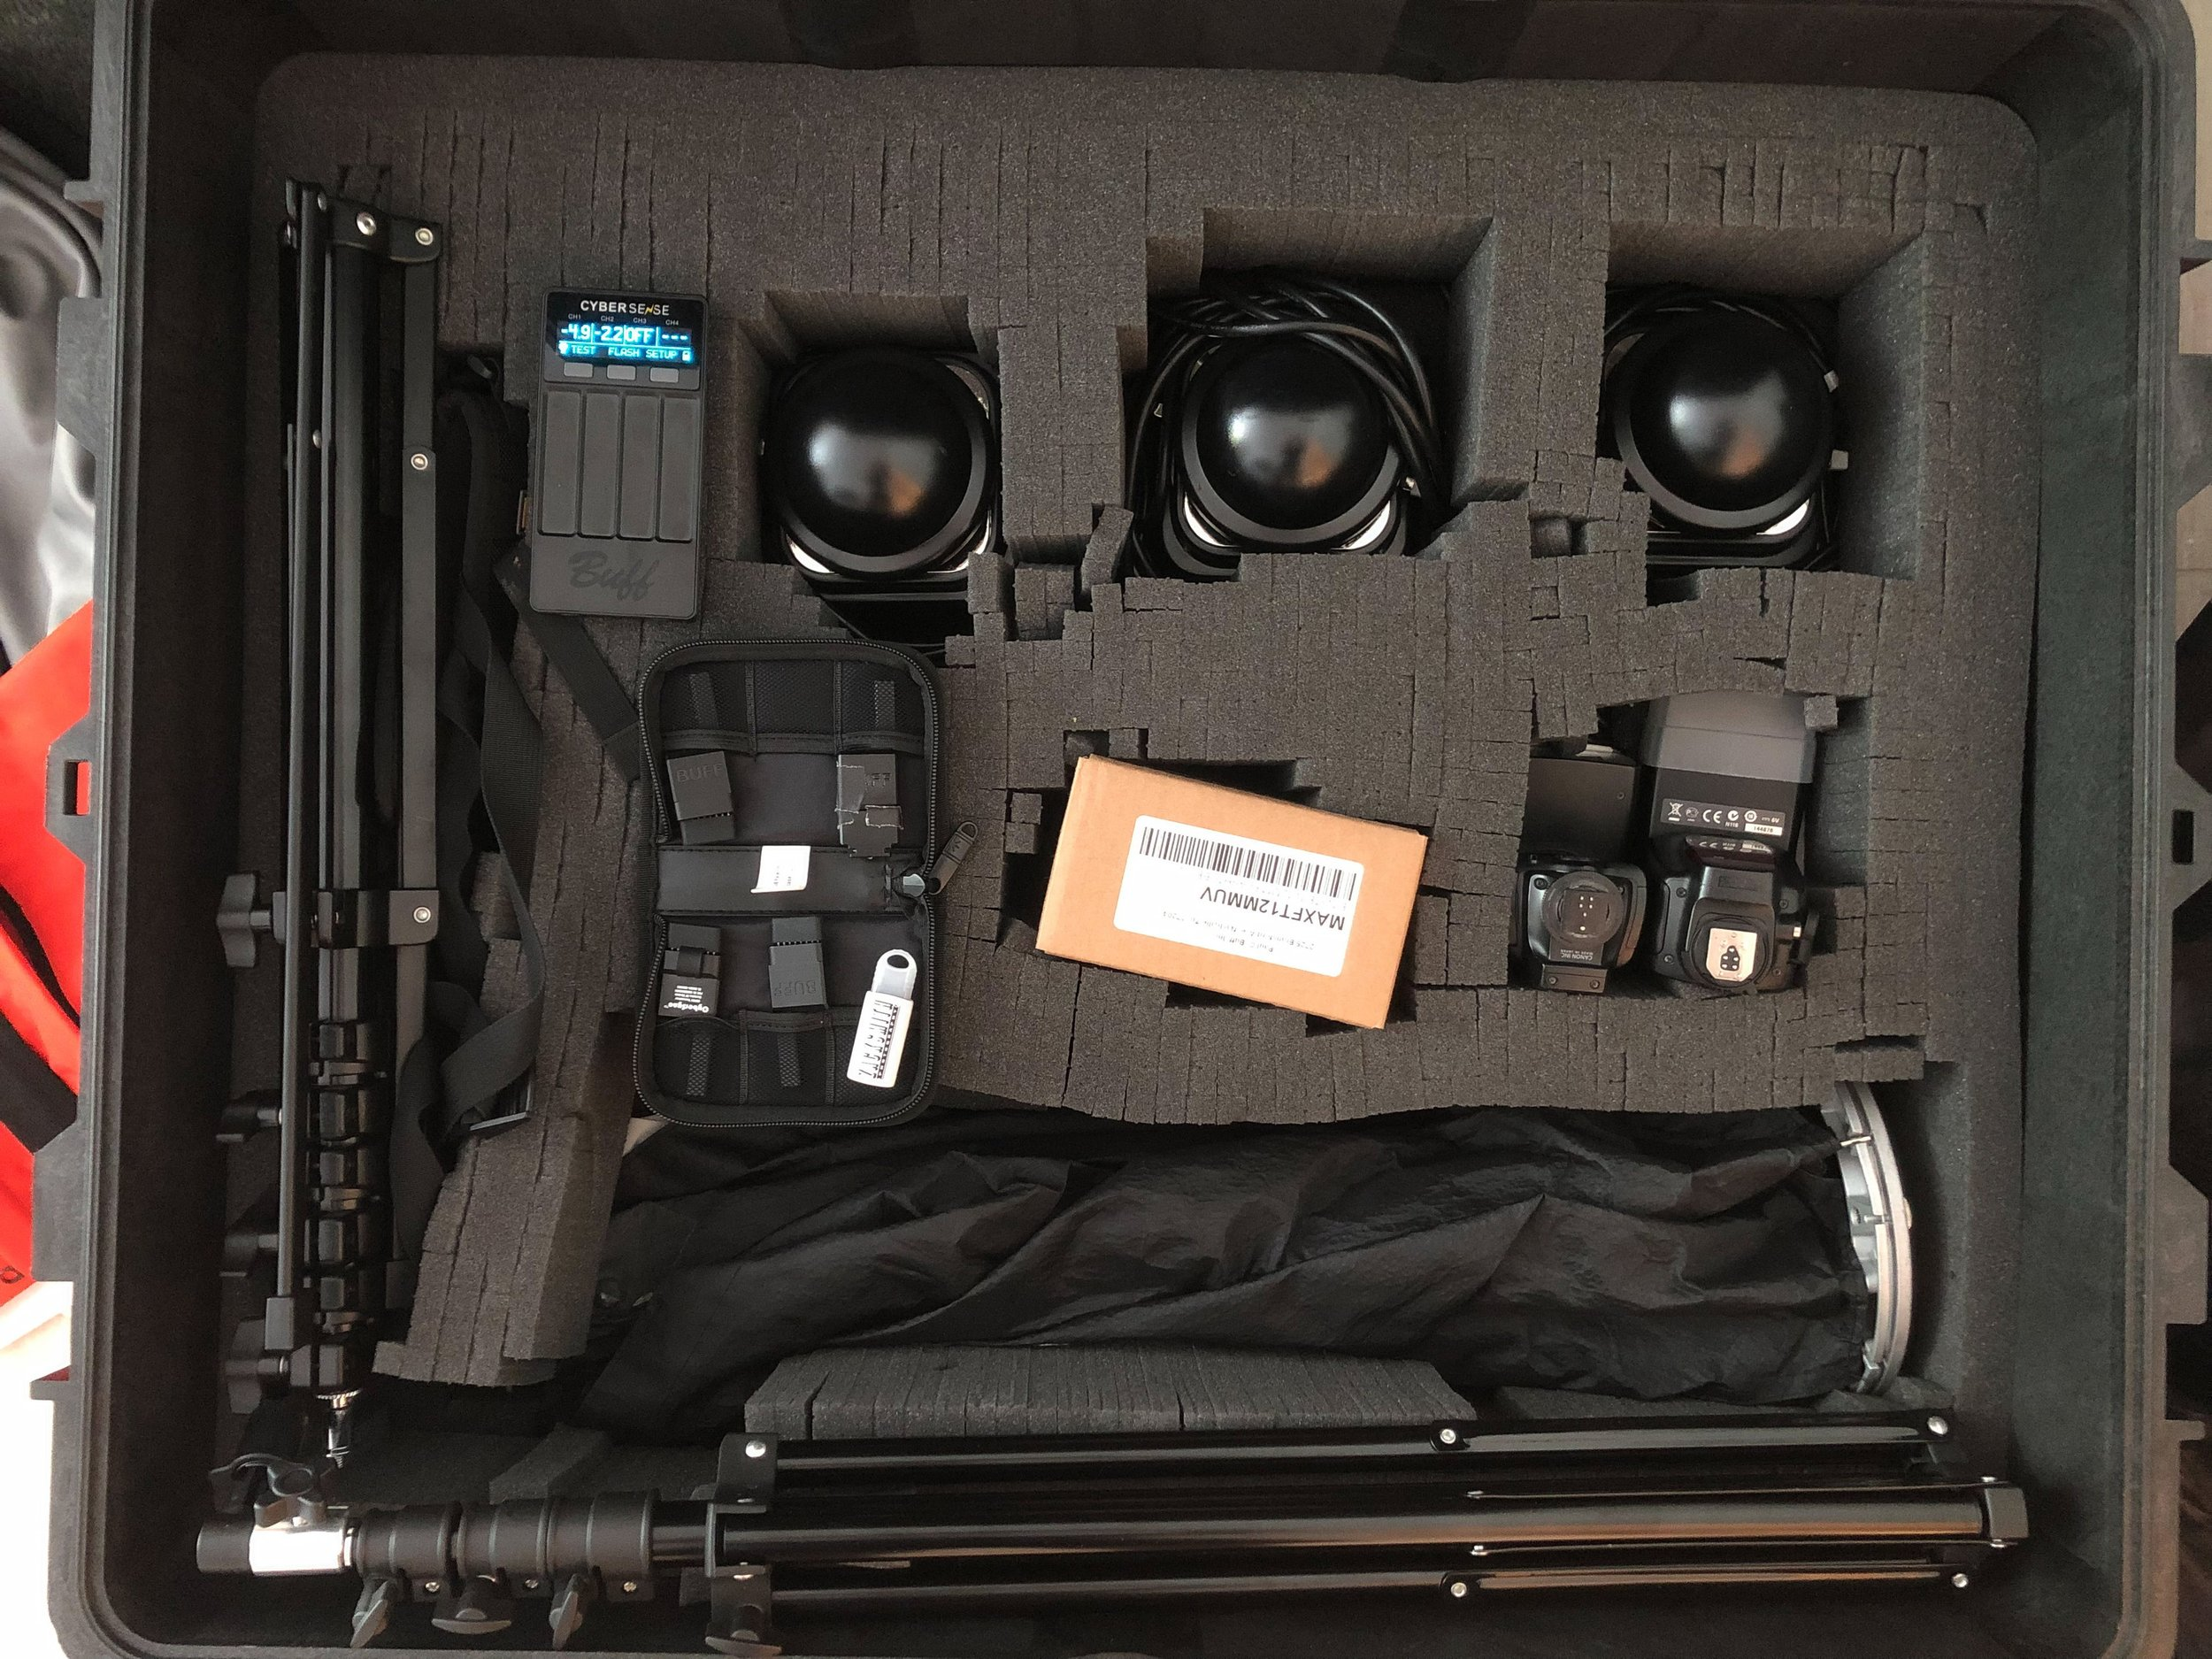 All of my necessary headshot lighting gear fit nicely in this Pelican 1660 case.